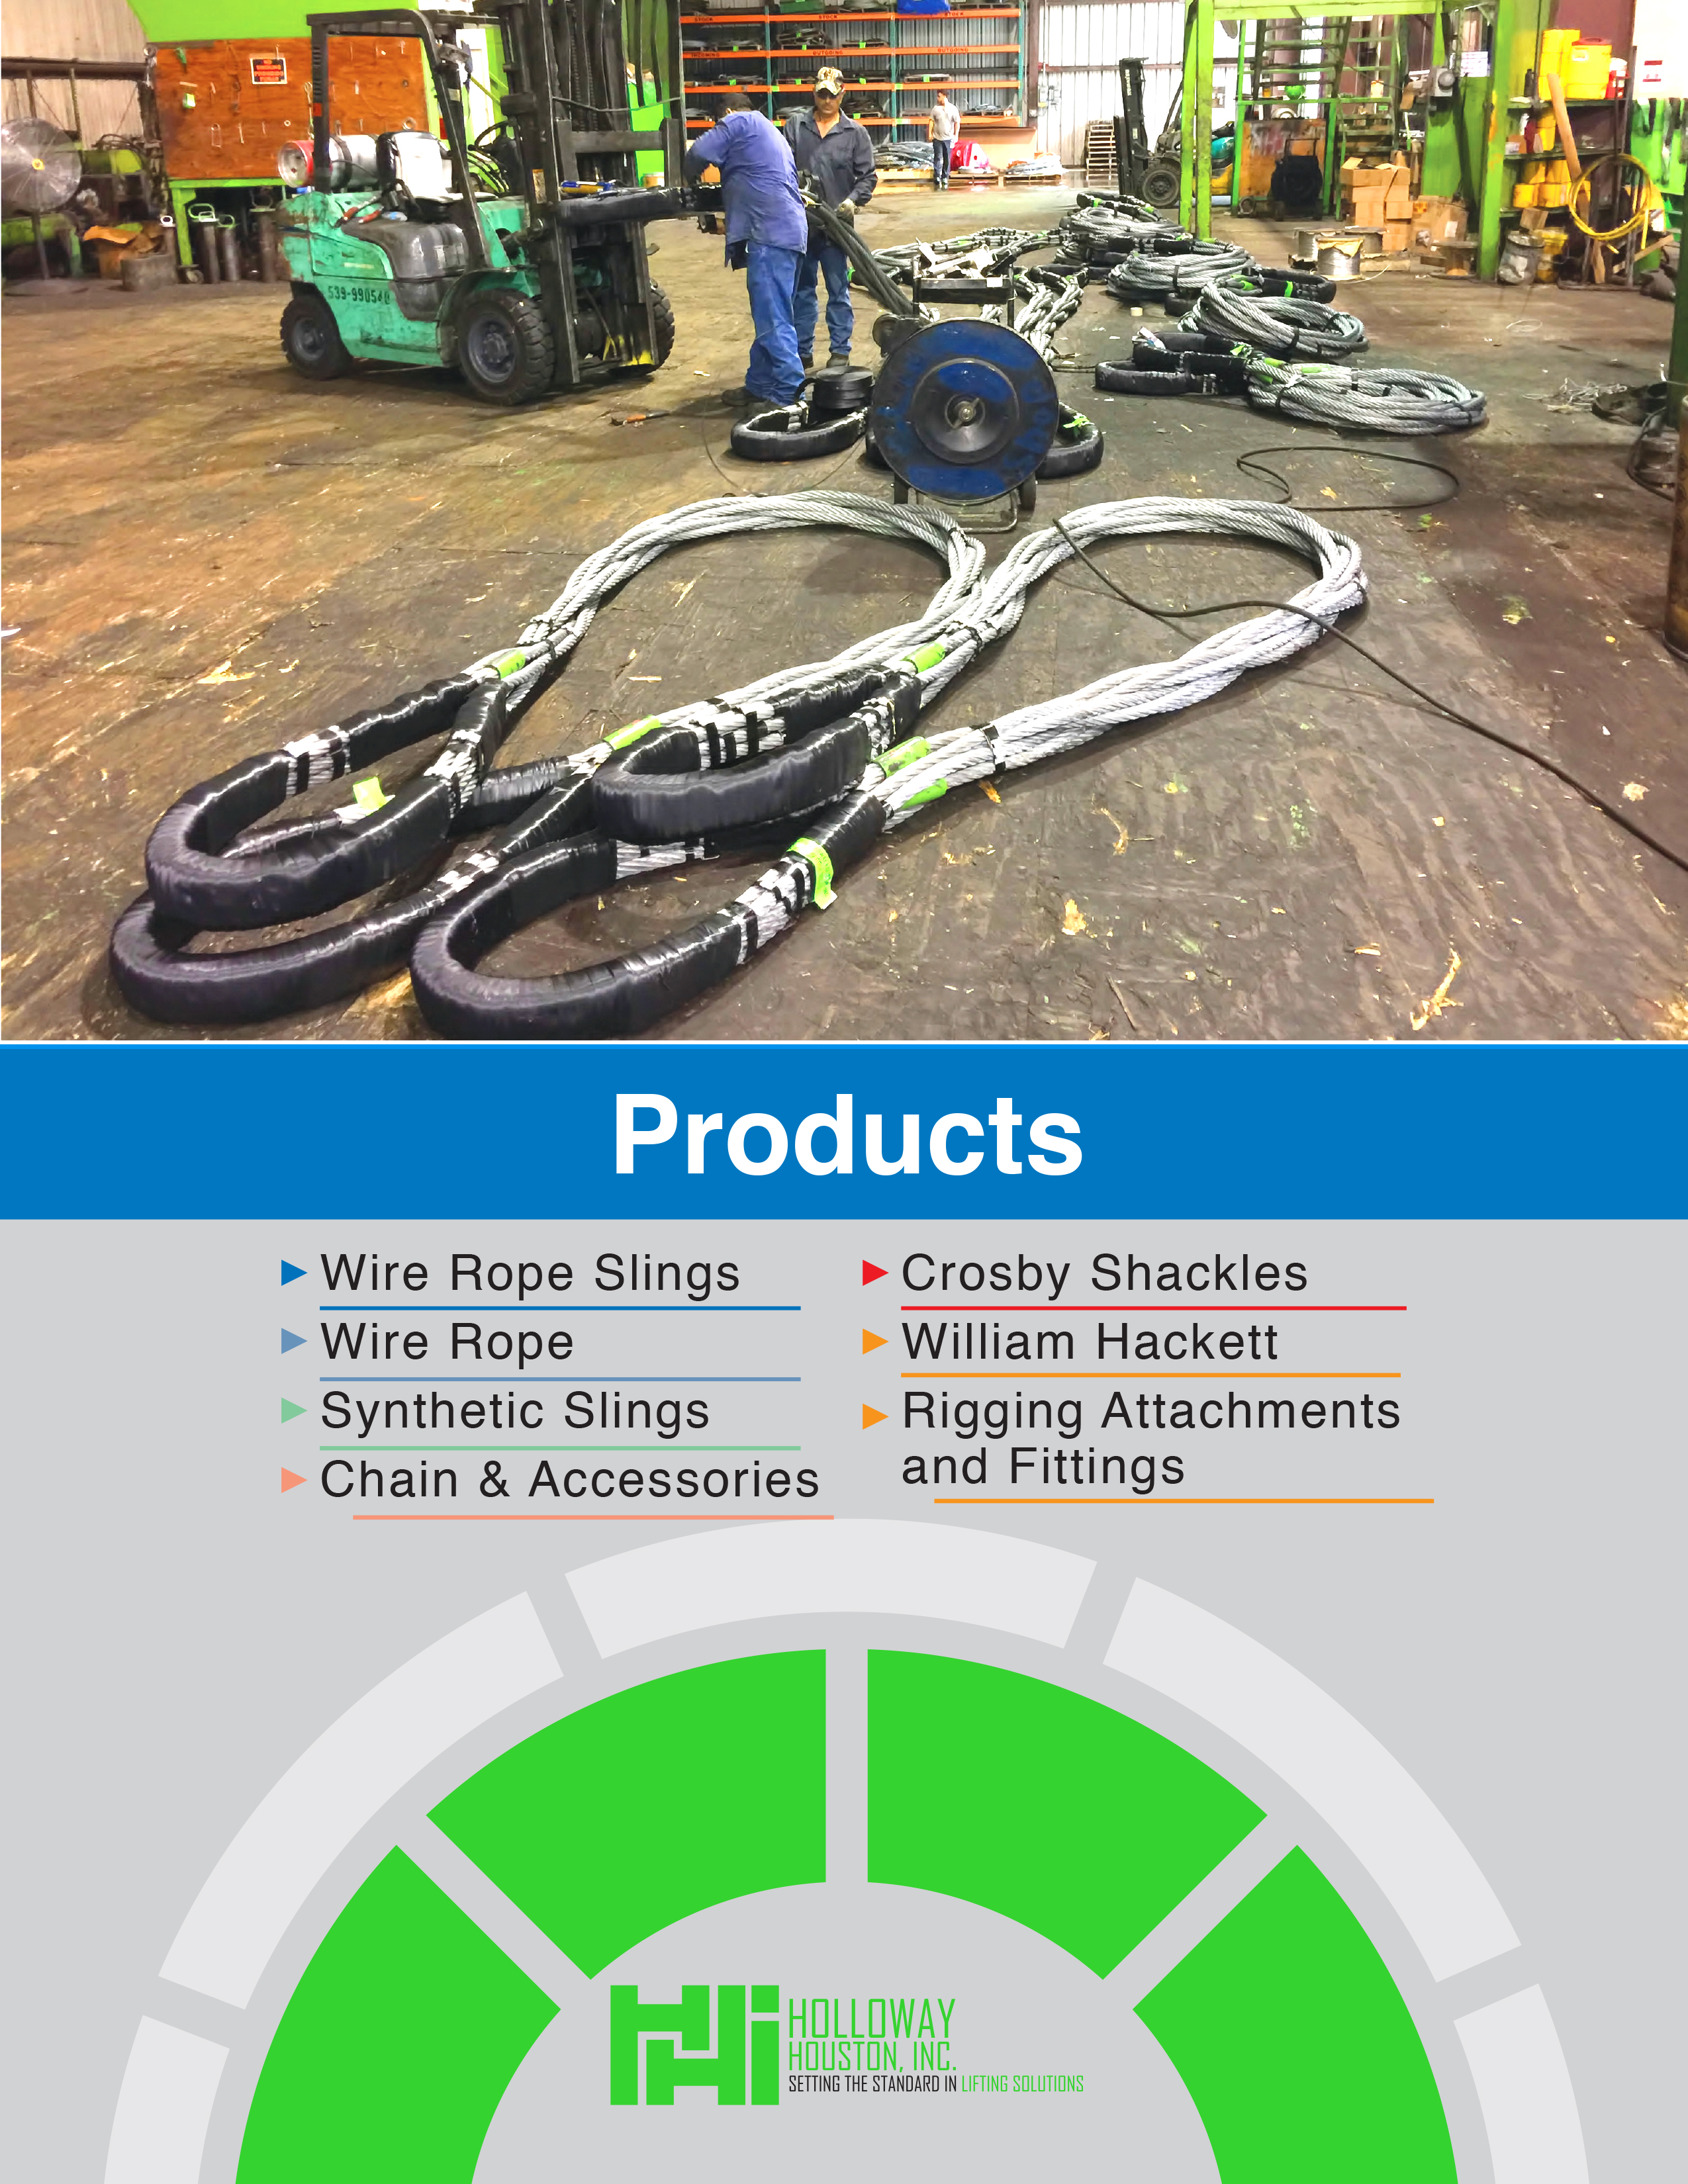 HHI Lifting Products